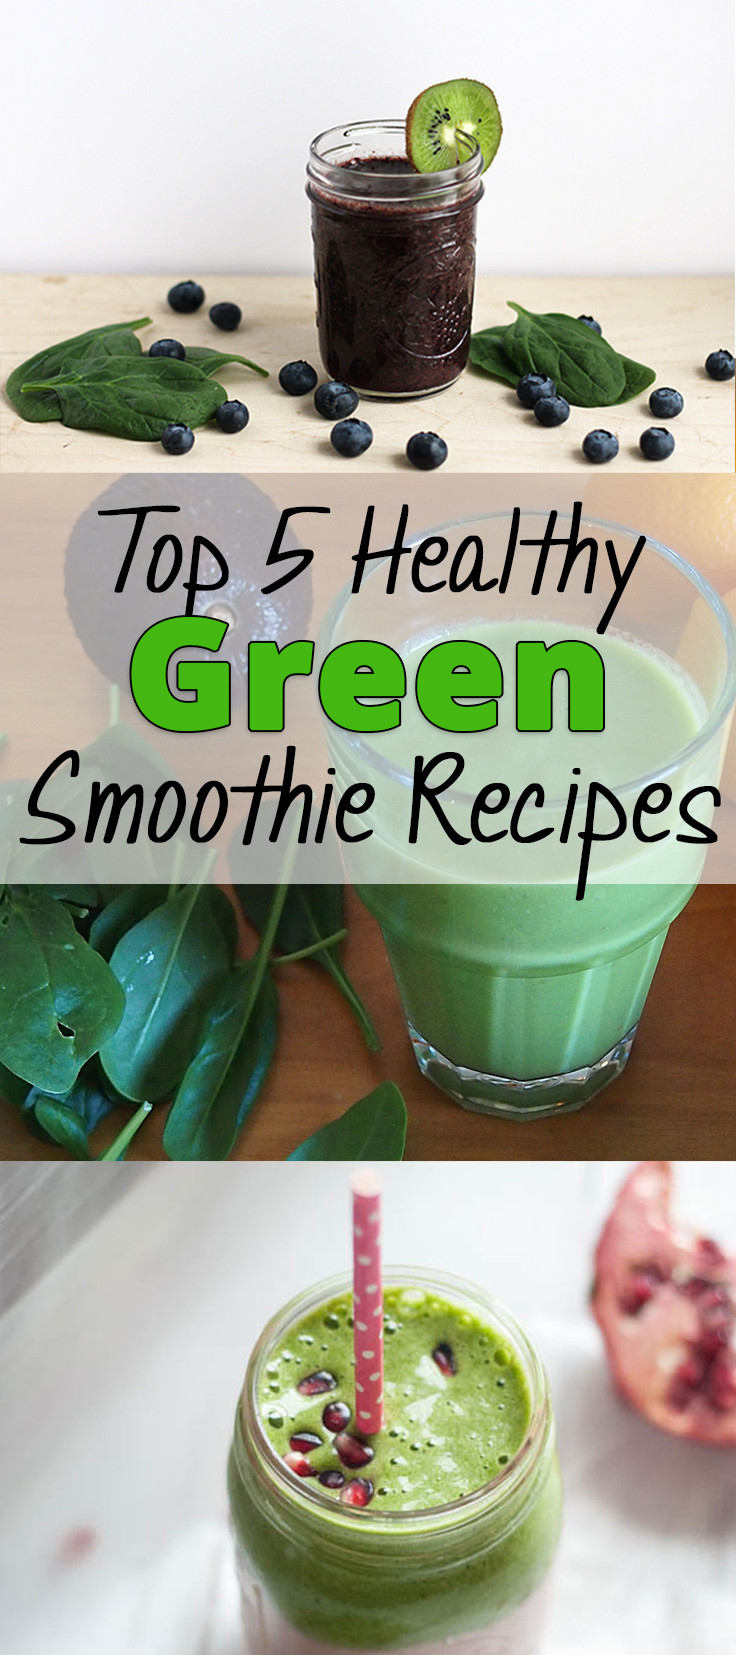 Best Healthy Smoothie Recipes  Top 5 Healthy Green Smoothie Recipes